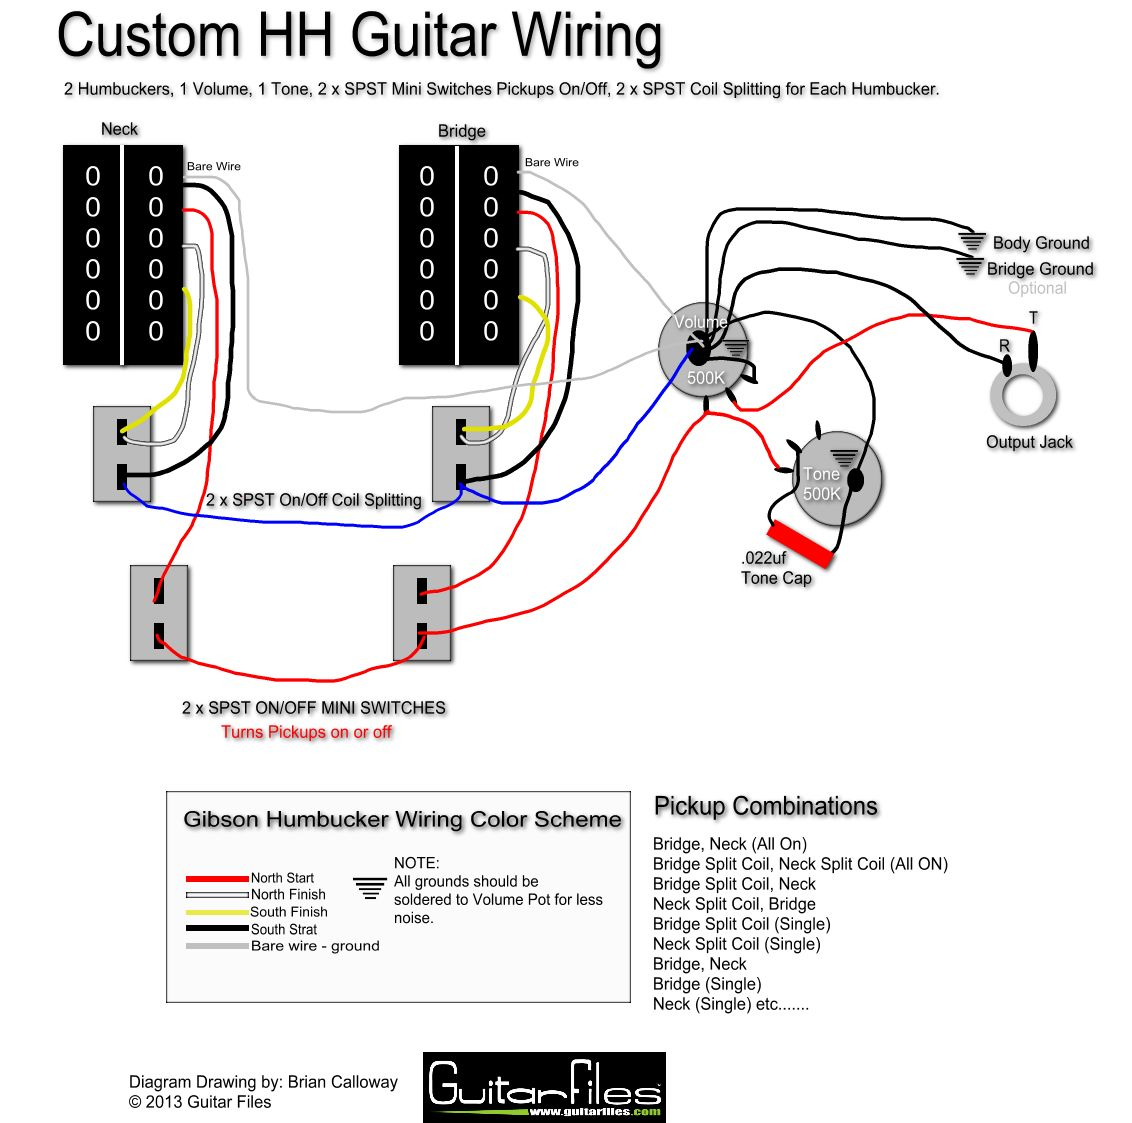 Stratocaster Hh Wiring Diagram : Custom hh wiring diagram with spst coil splitting and